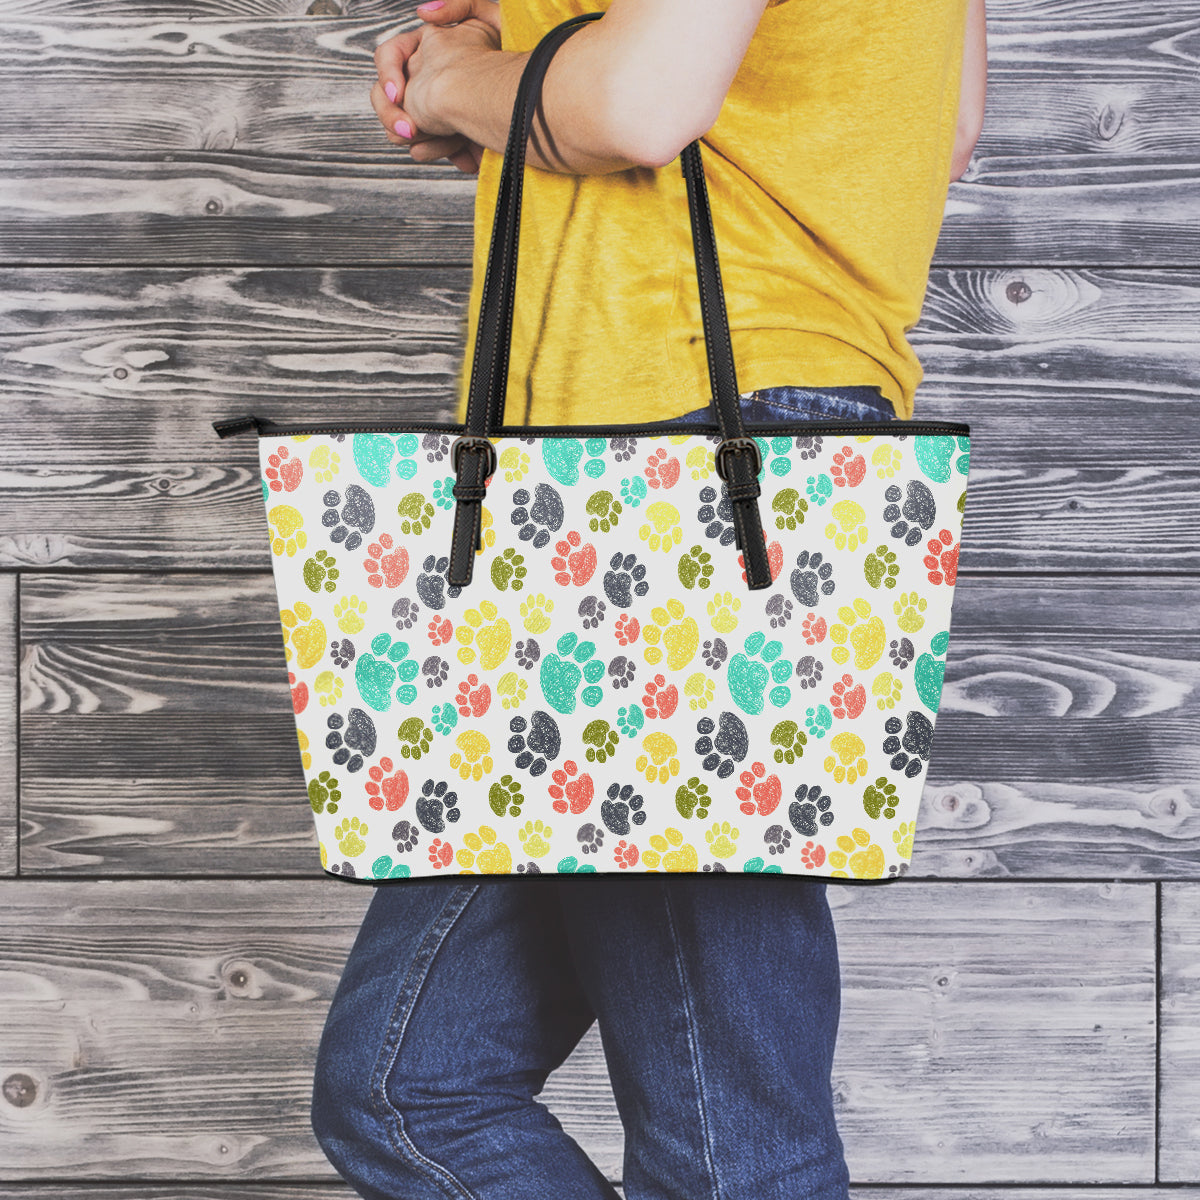 Colorful Paws Large Leather Tote Bag